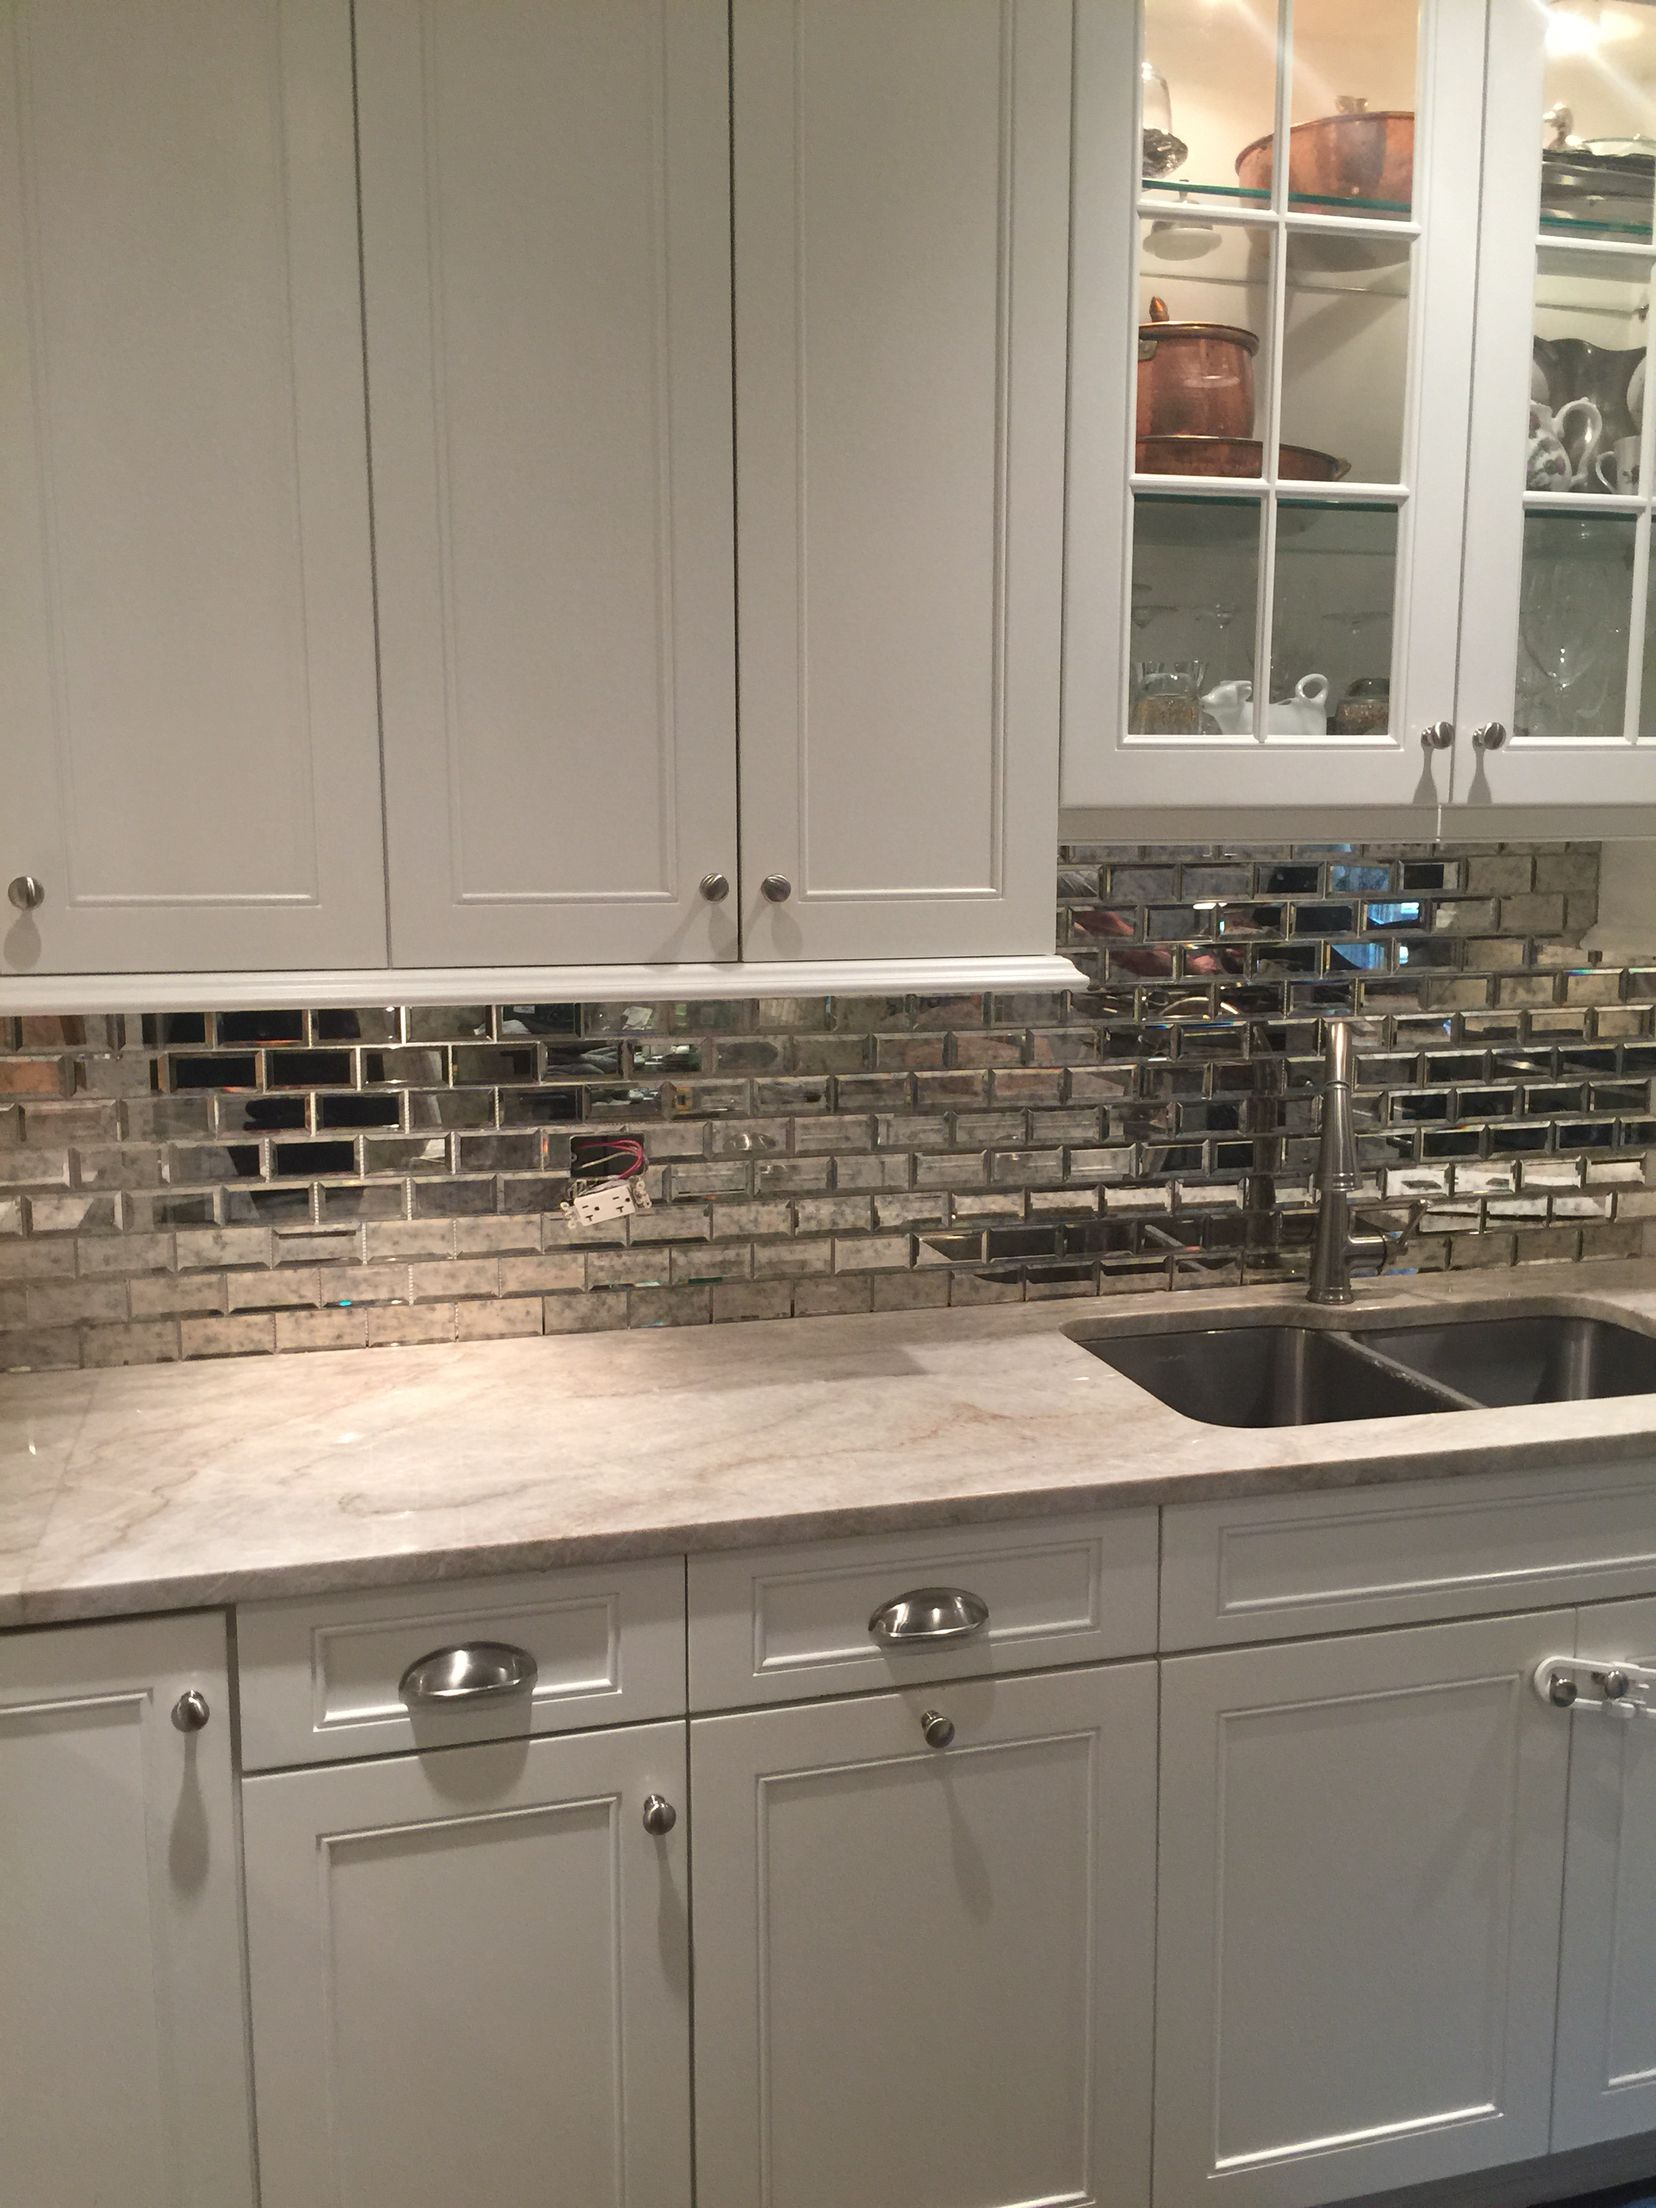 Simply White Kitchen Cabinet Taj Mahal Quartzite Mirrored